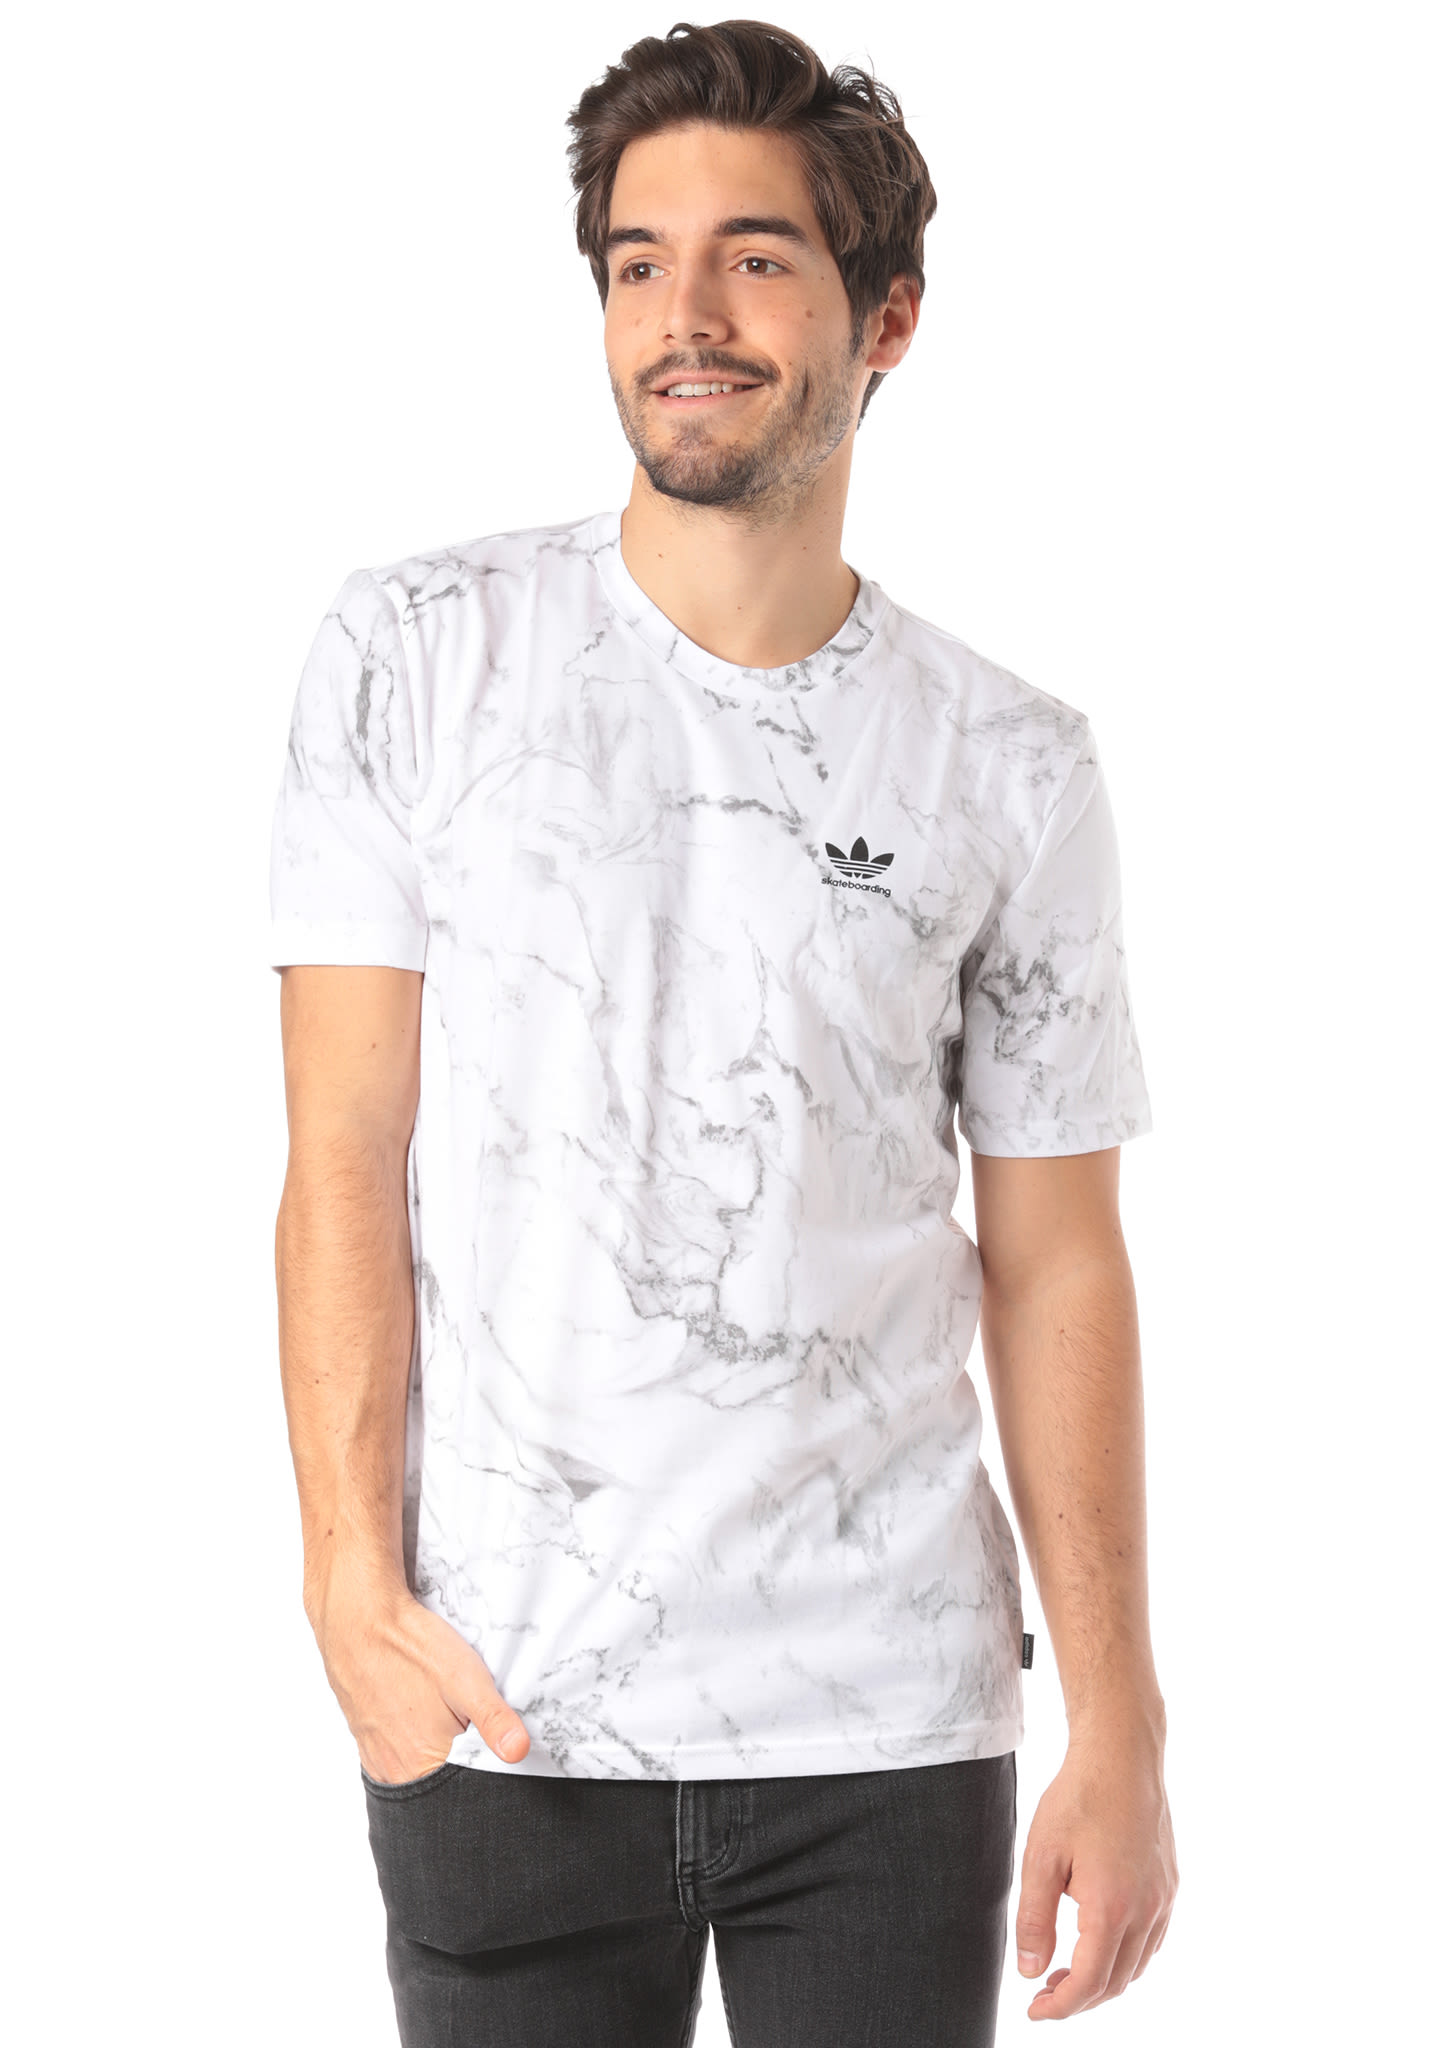 Pour T 2 Blanc 0 Homme Adidas Skateboarding Marble Shirt wTnUp